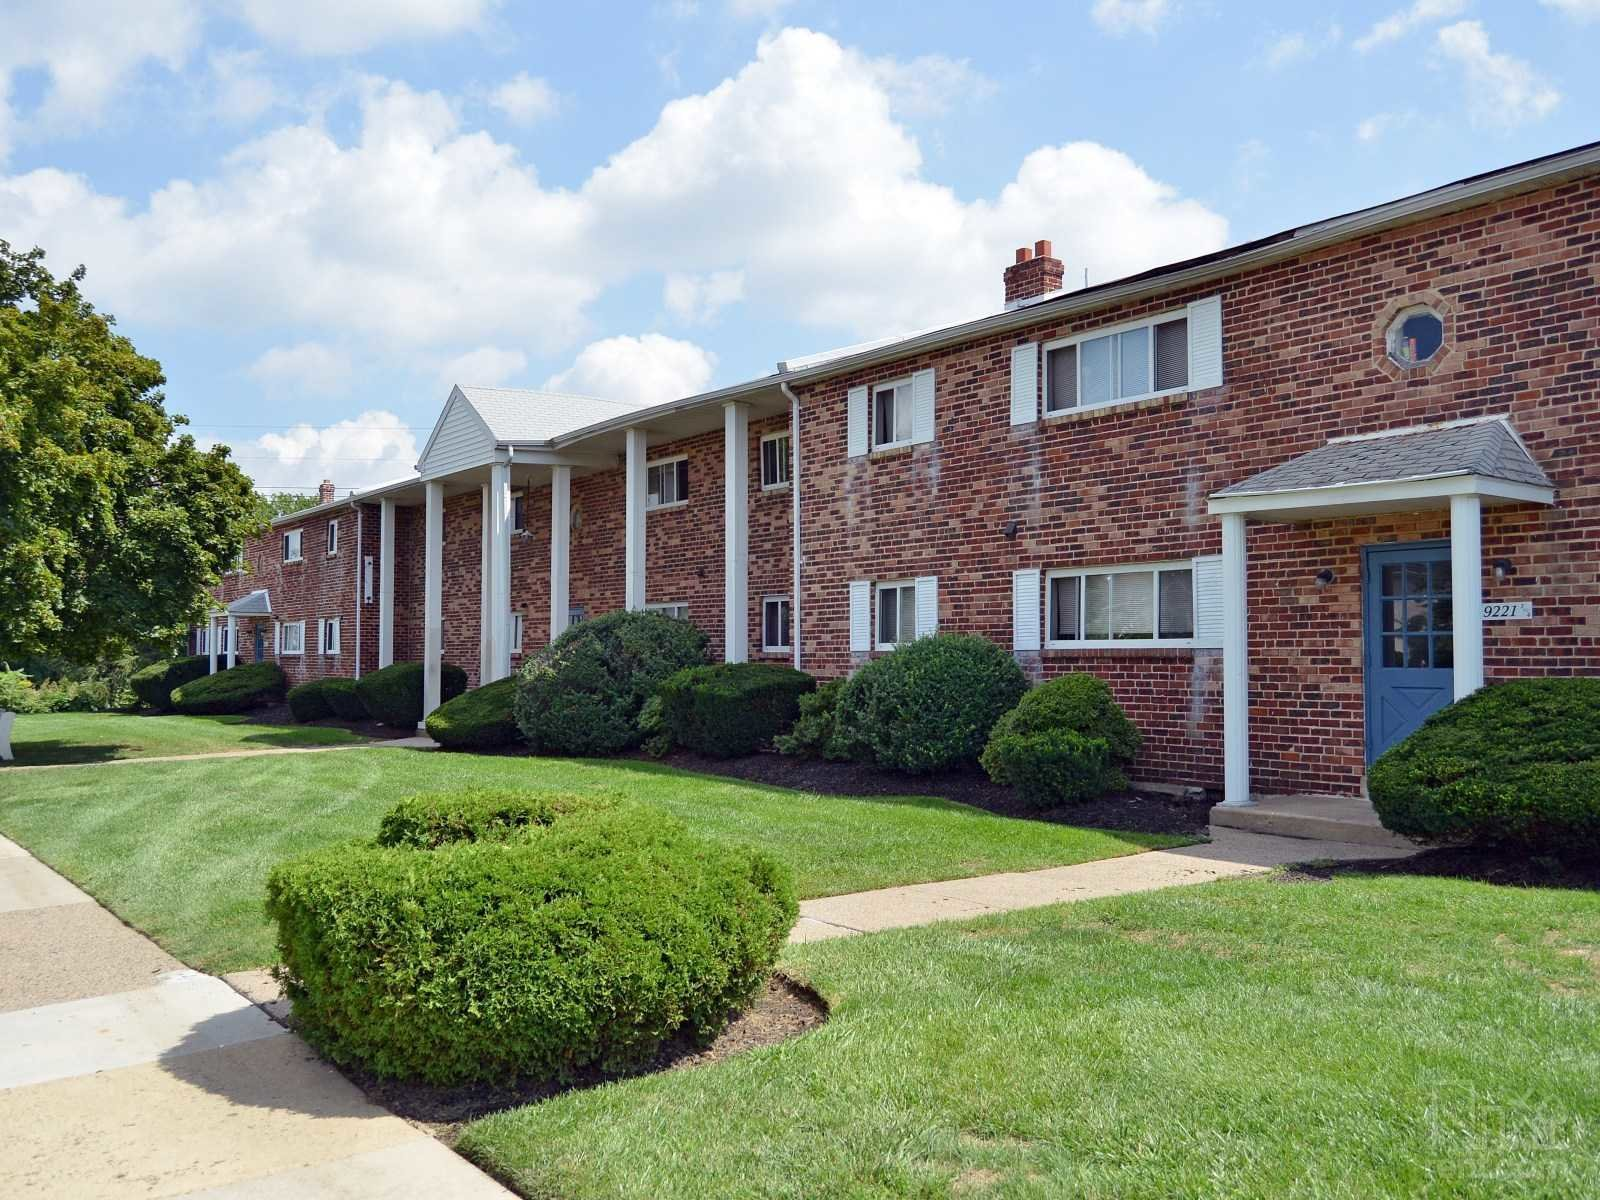 Best 3 Bedroom Houses For Rent In Philadelphia Pa 17 Rental With Pictures